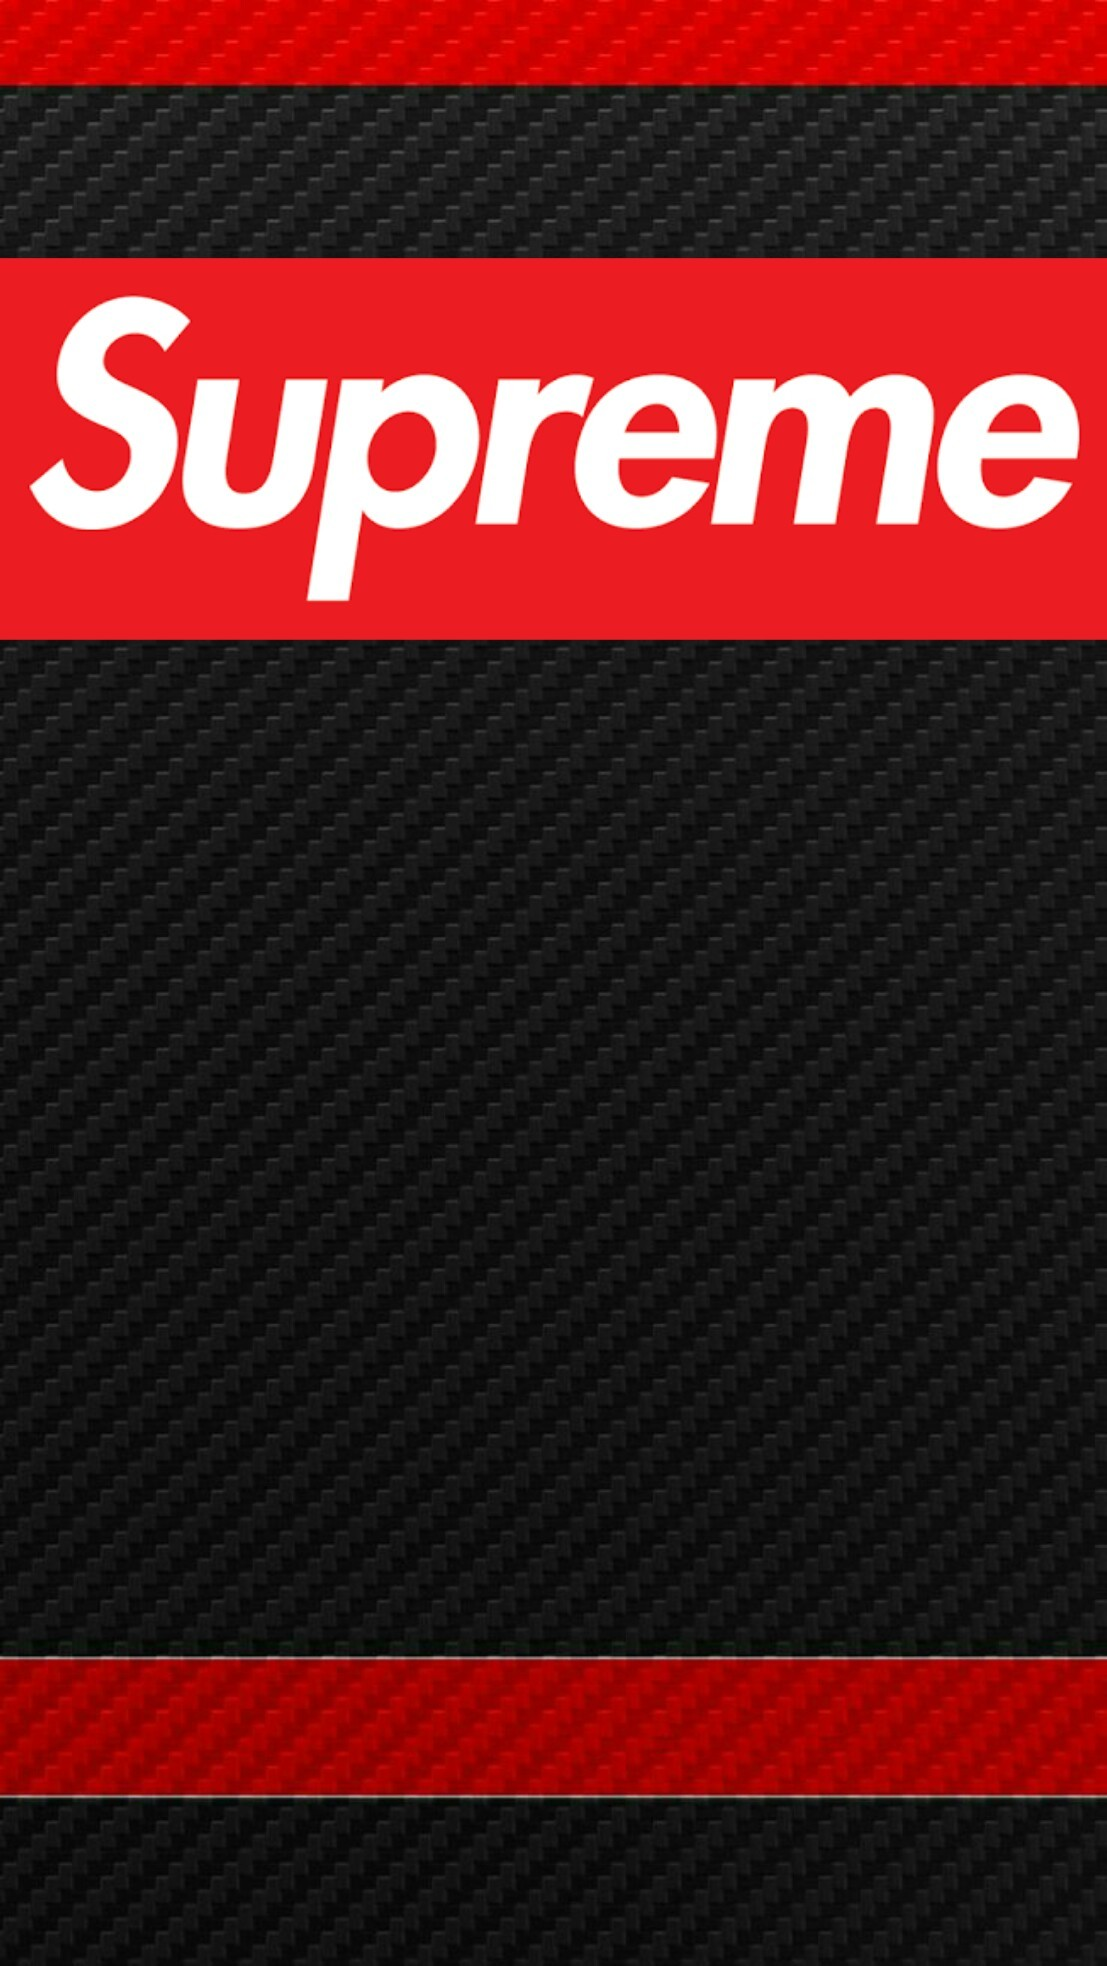 Bape Iphone Wallpaper 63 Images